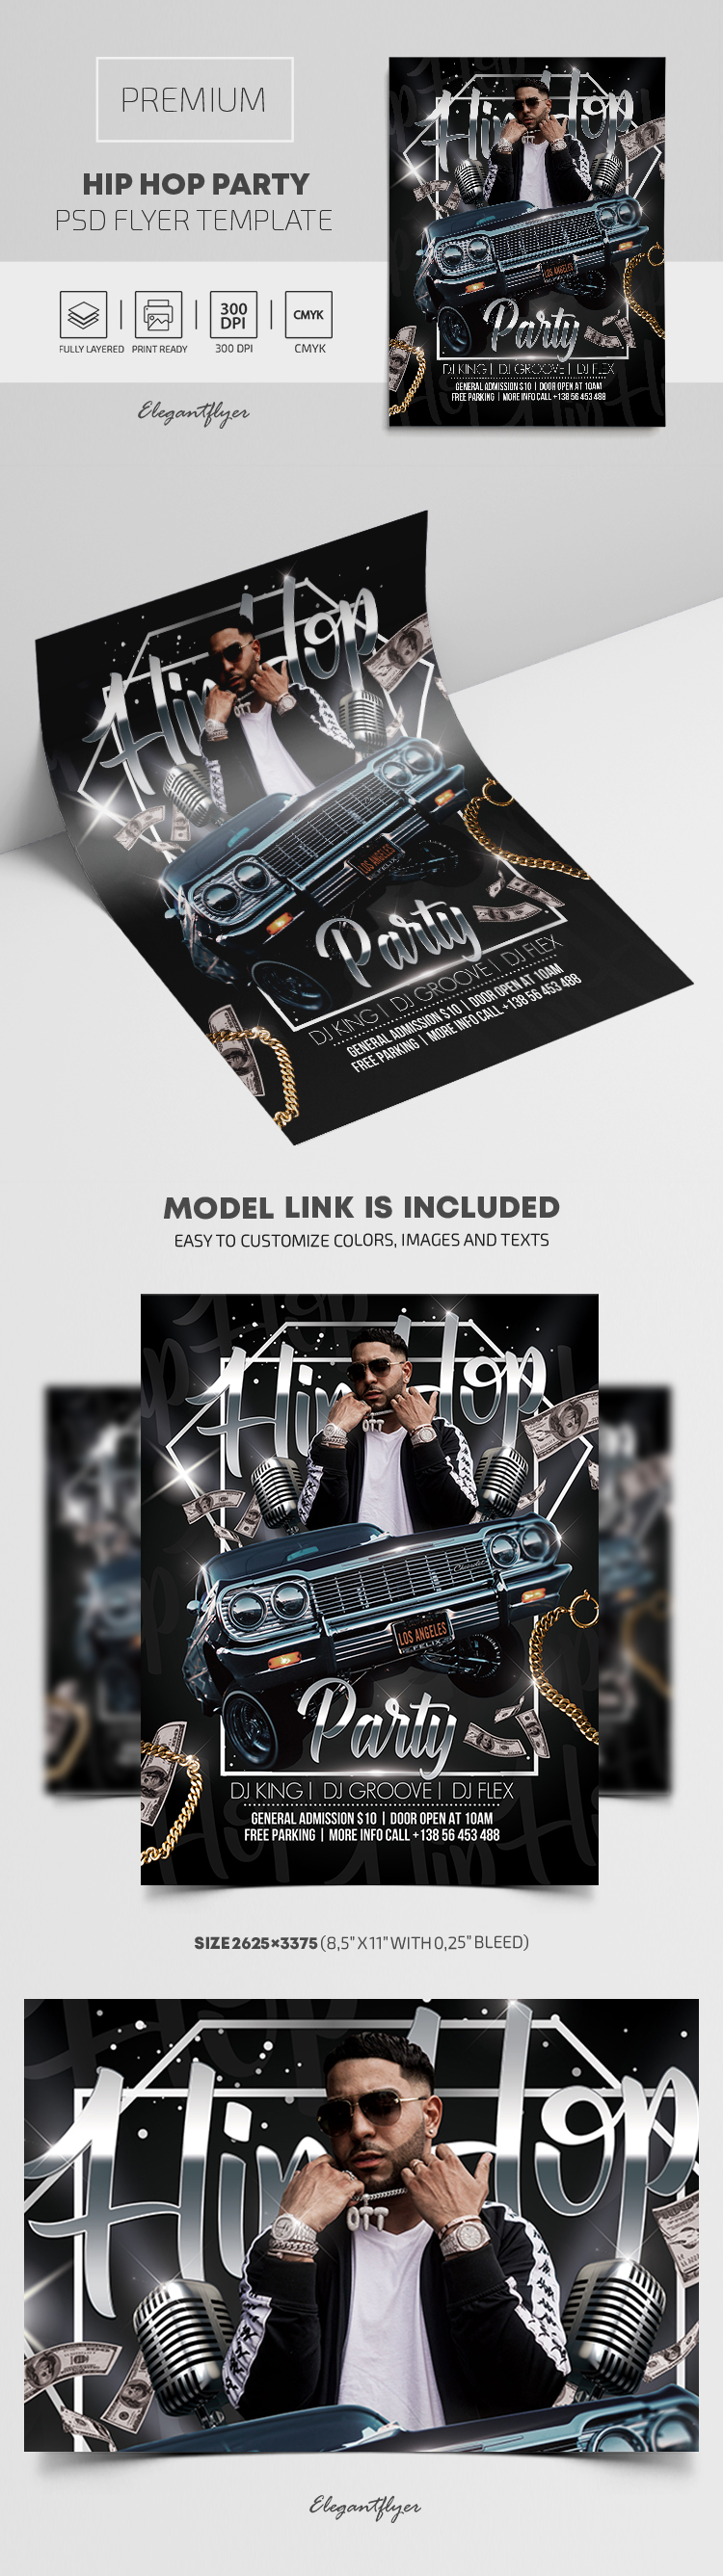 Hip Hop Party – Premium PSD Flyer Template